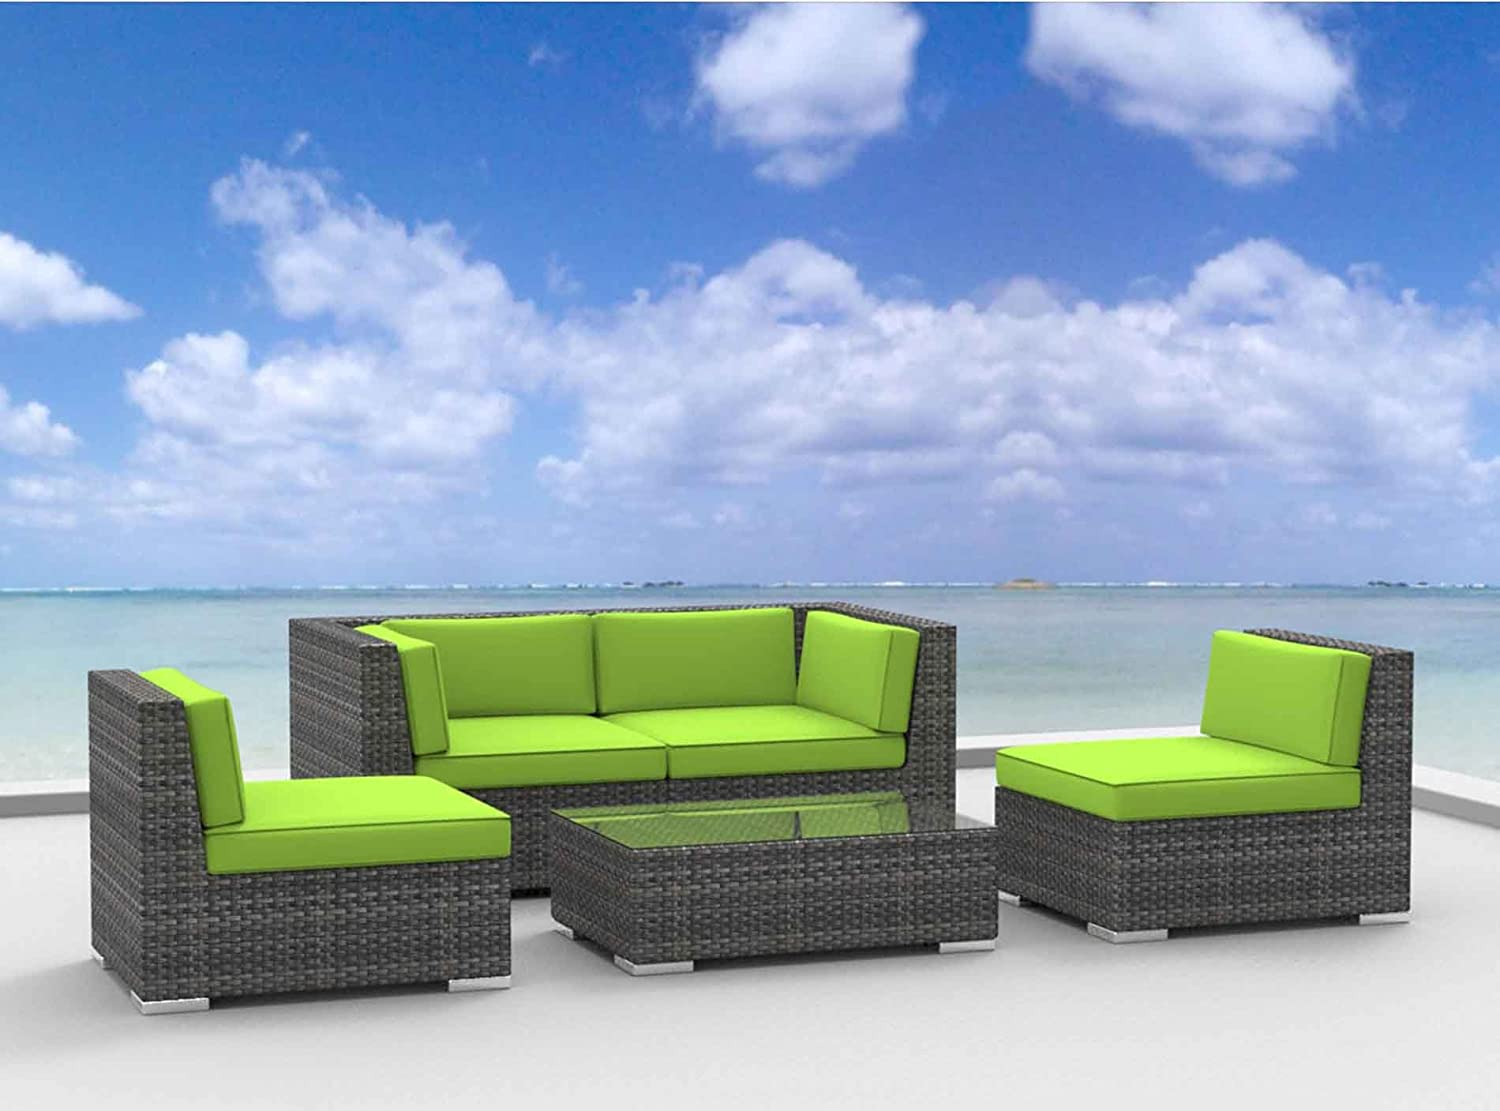 www.urbanfurnishing.net Urban Furnishing - RIO 5pc Modern Outdoor Backyard Wicker Rattan Patio Furniture Sofa Sectional Couch Set - Lime Green at Sears.com